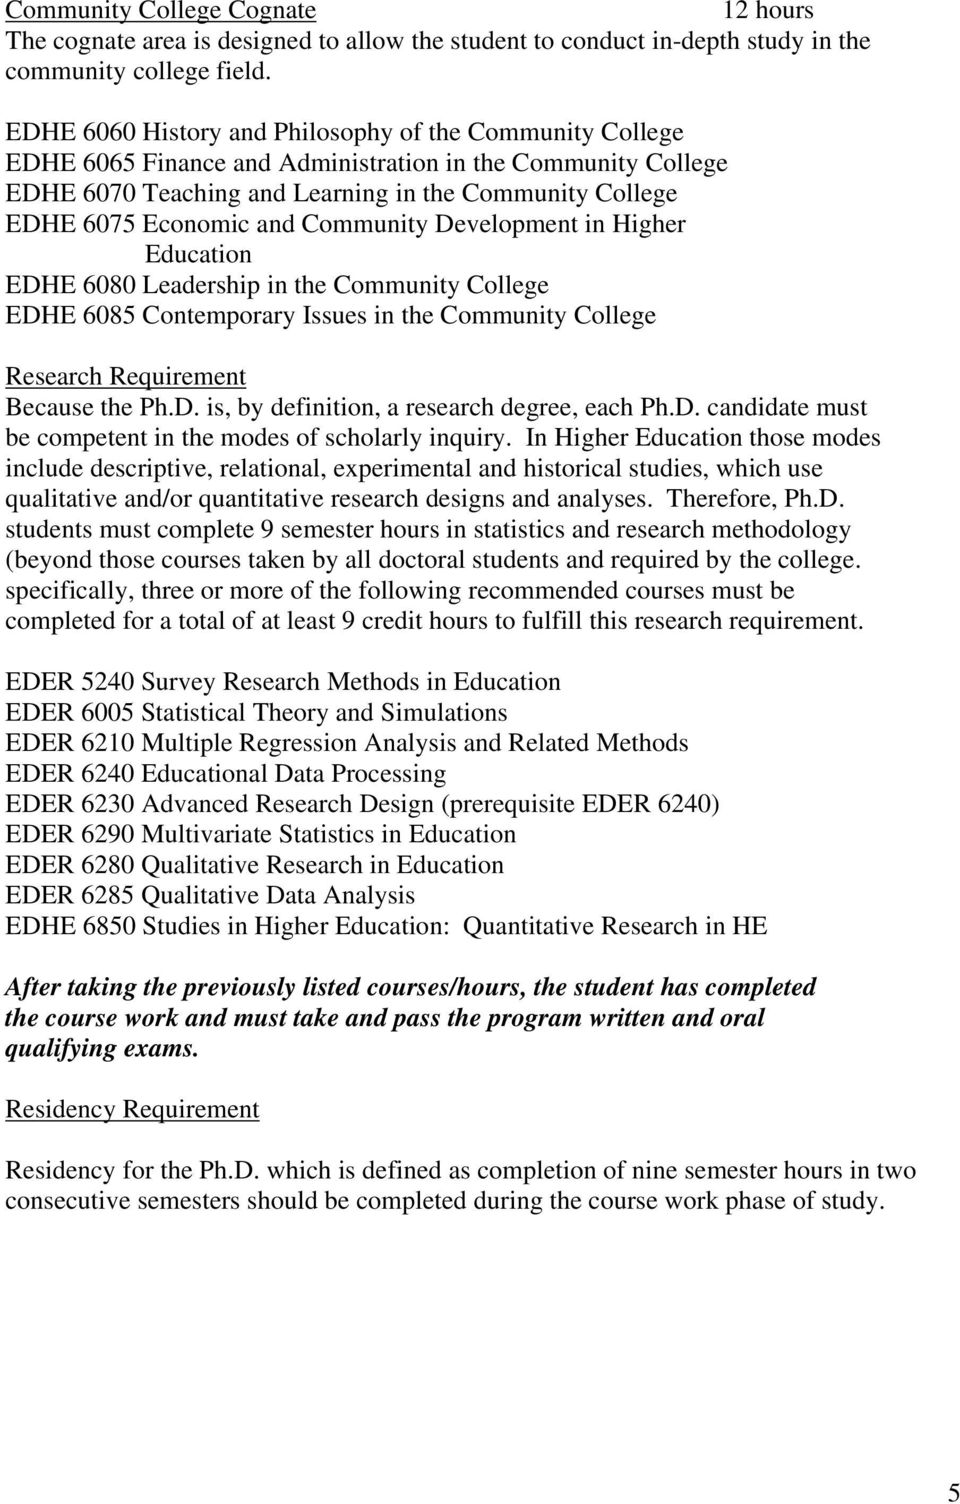 Community Development in Higher Education EDHE 6080 Leadership in the Community College EDHE 6085 Contemporary Issues in the Community College Research Requirement Because the Ph.D. is, by definition, a research degree, each Ph.